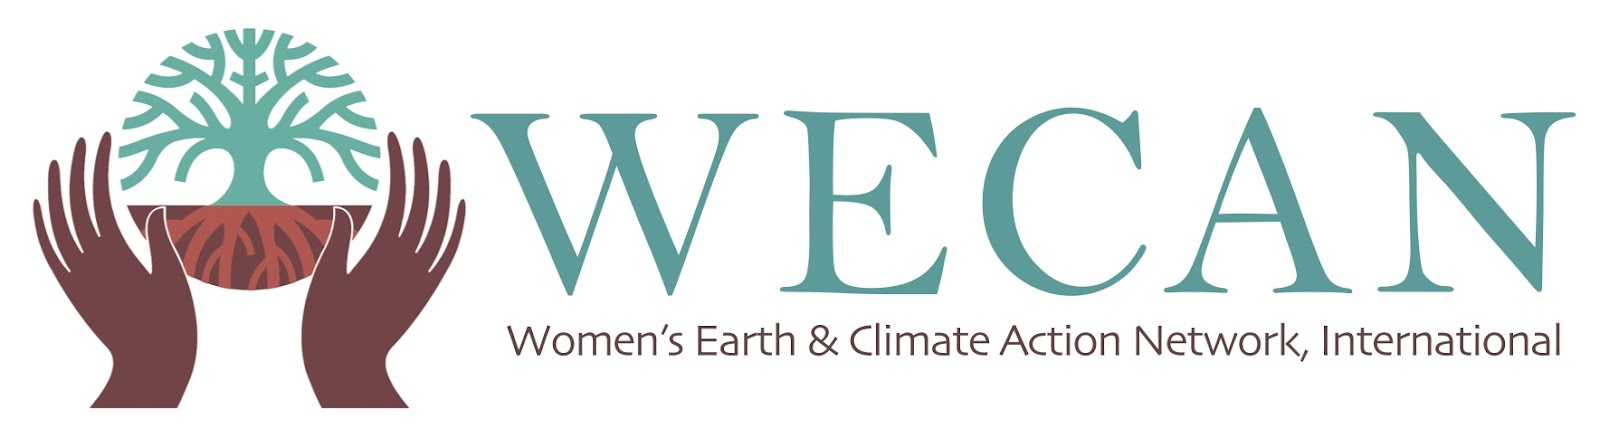 WECAN Logo Full Logo copy.jpg